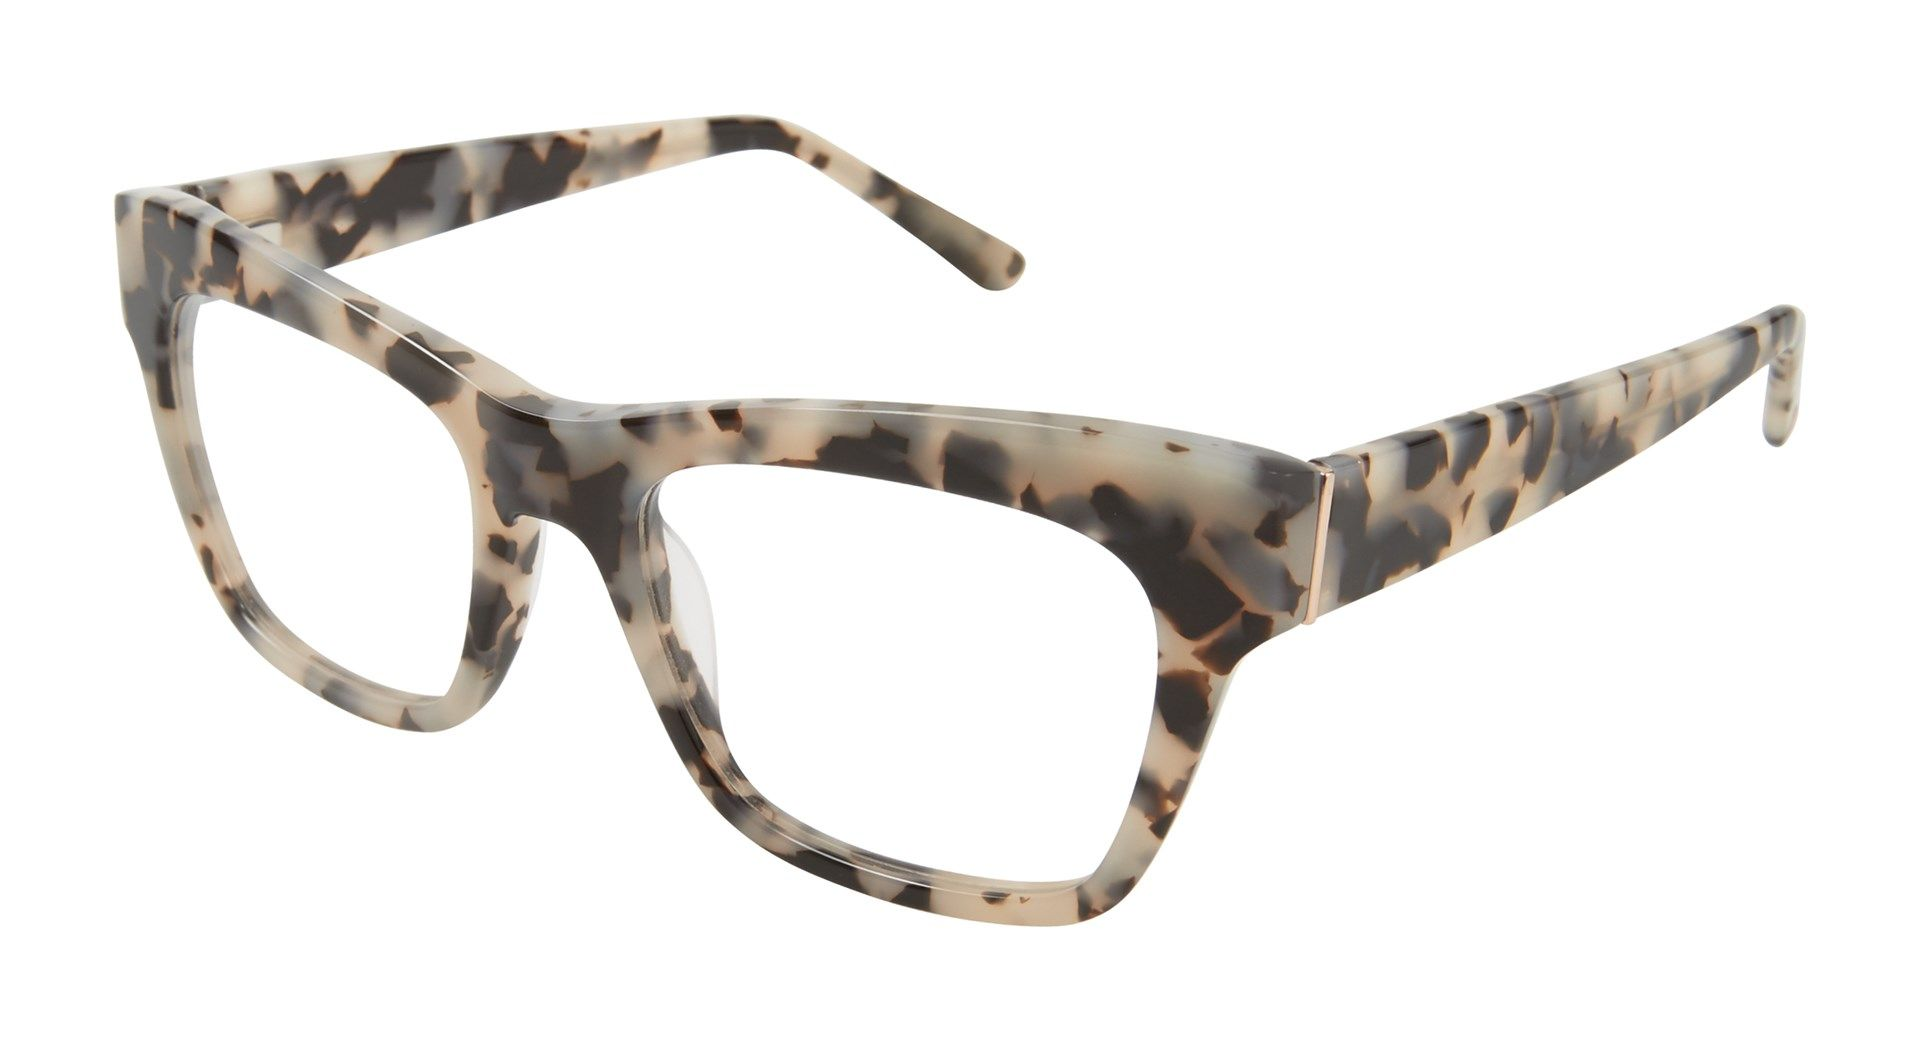 56c33dcacd L.A.M.B. from Tura  AYLA - LA031 in white tortoise. Follow us FB or find us  on the web   eyecarefortcollins.com